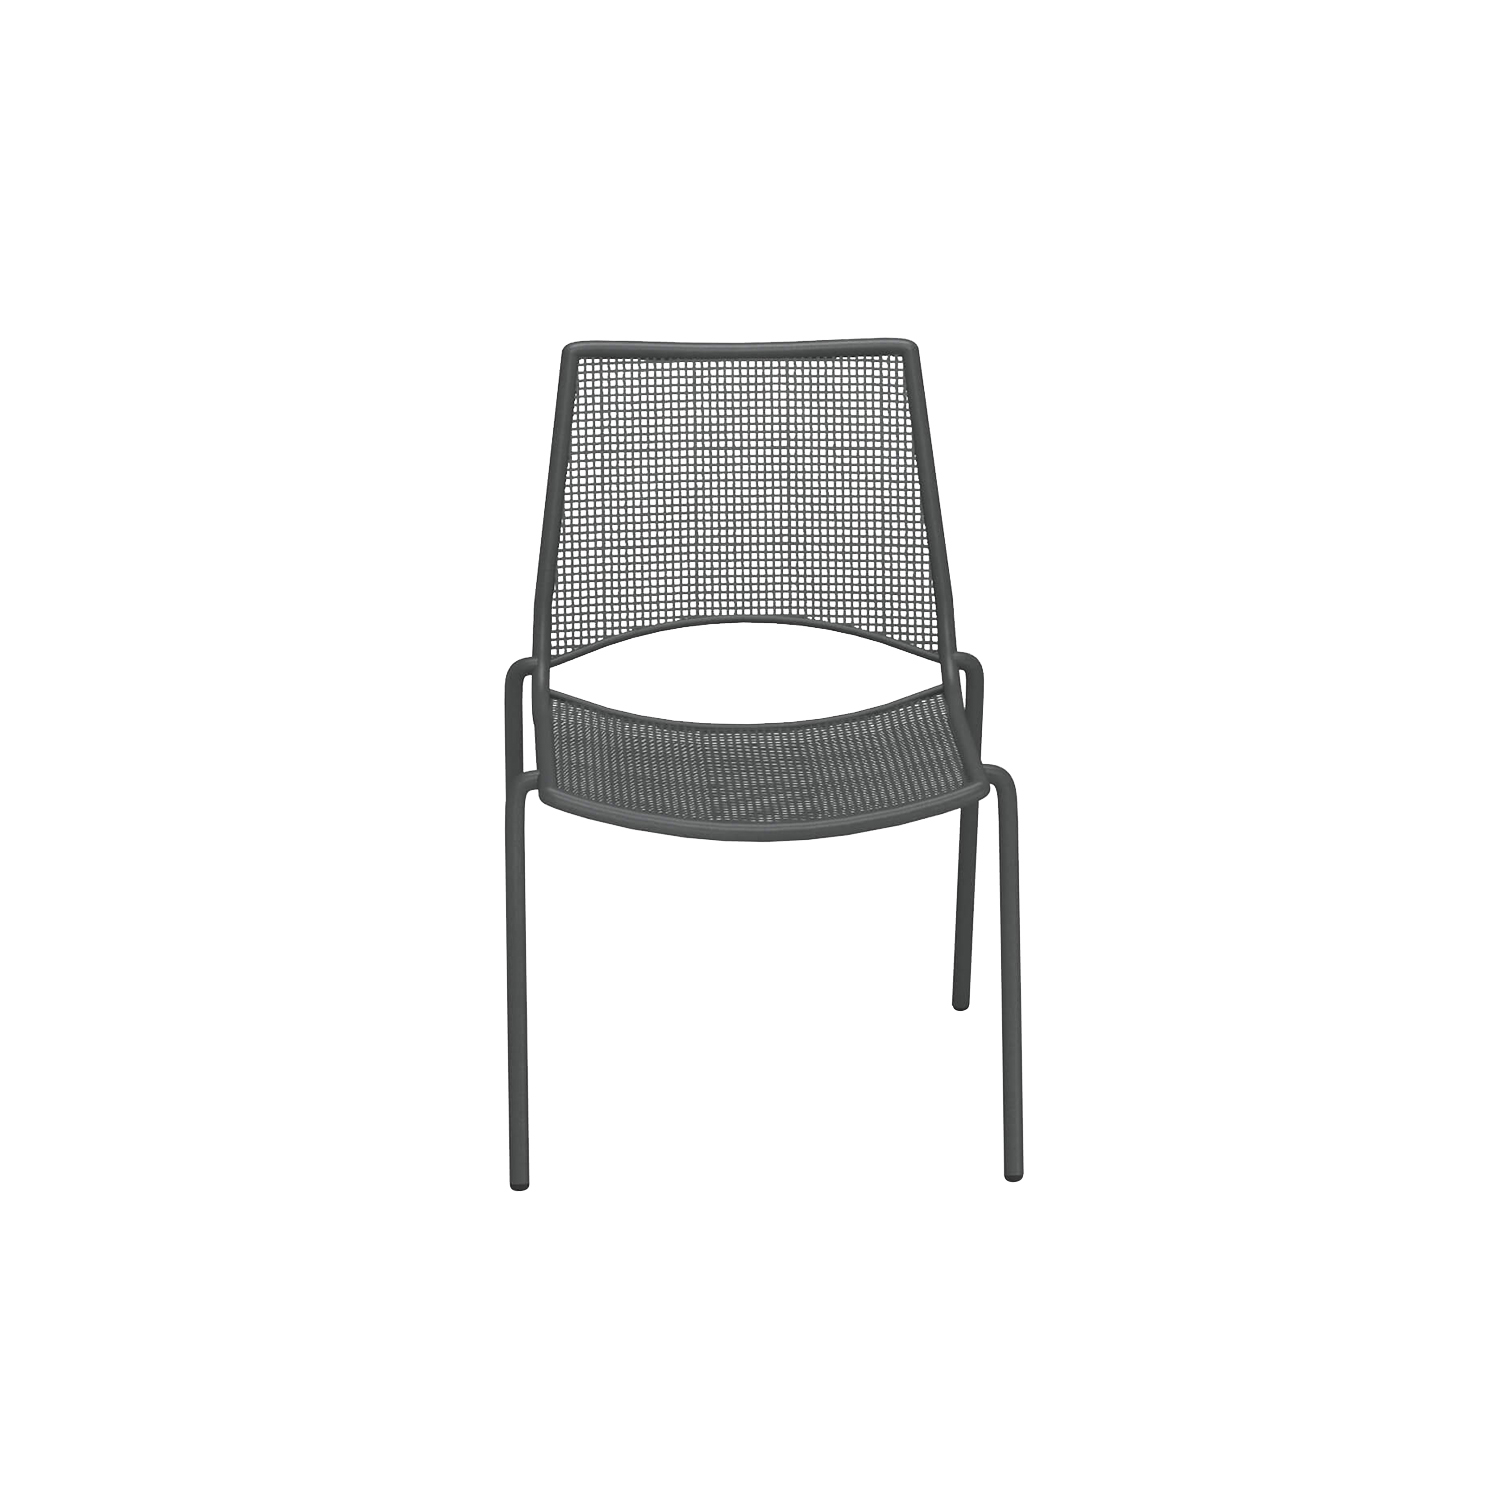 Ala Chair - Set of 4 - <p>Soft and light steel collection, Ala is extremely versatile and fits perfectly in every environment. Presenting a chair and an armchair, Ala furnishes all kind of outdoor spaces with personality.</p>The Ala Chair has a frame made from steel and a seat and back in hot galvanised painted simulated woven wire mesh and comes in four different finishes. This chair can be placed outside. Please enquire for more information.    Matter of Stuff